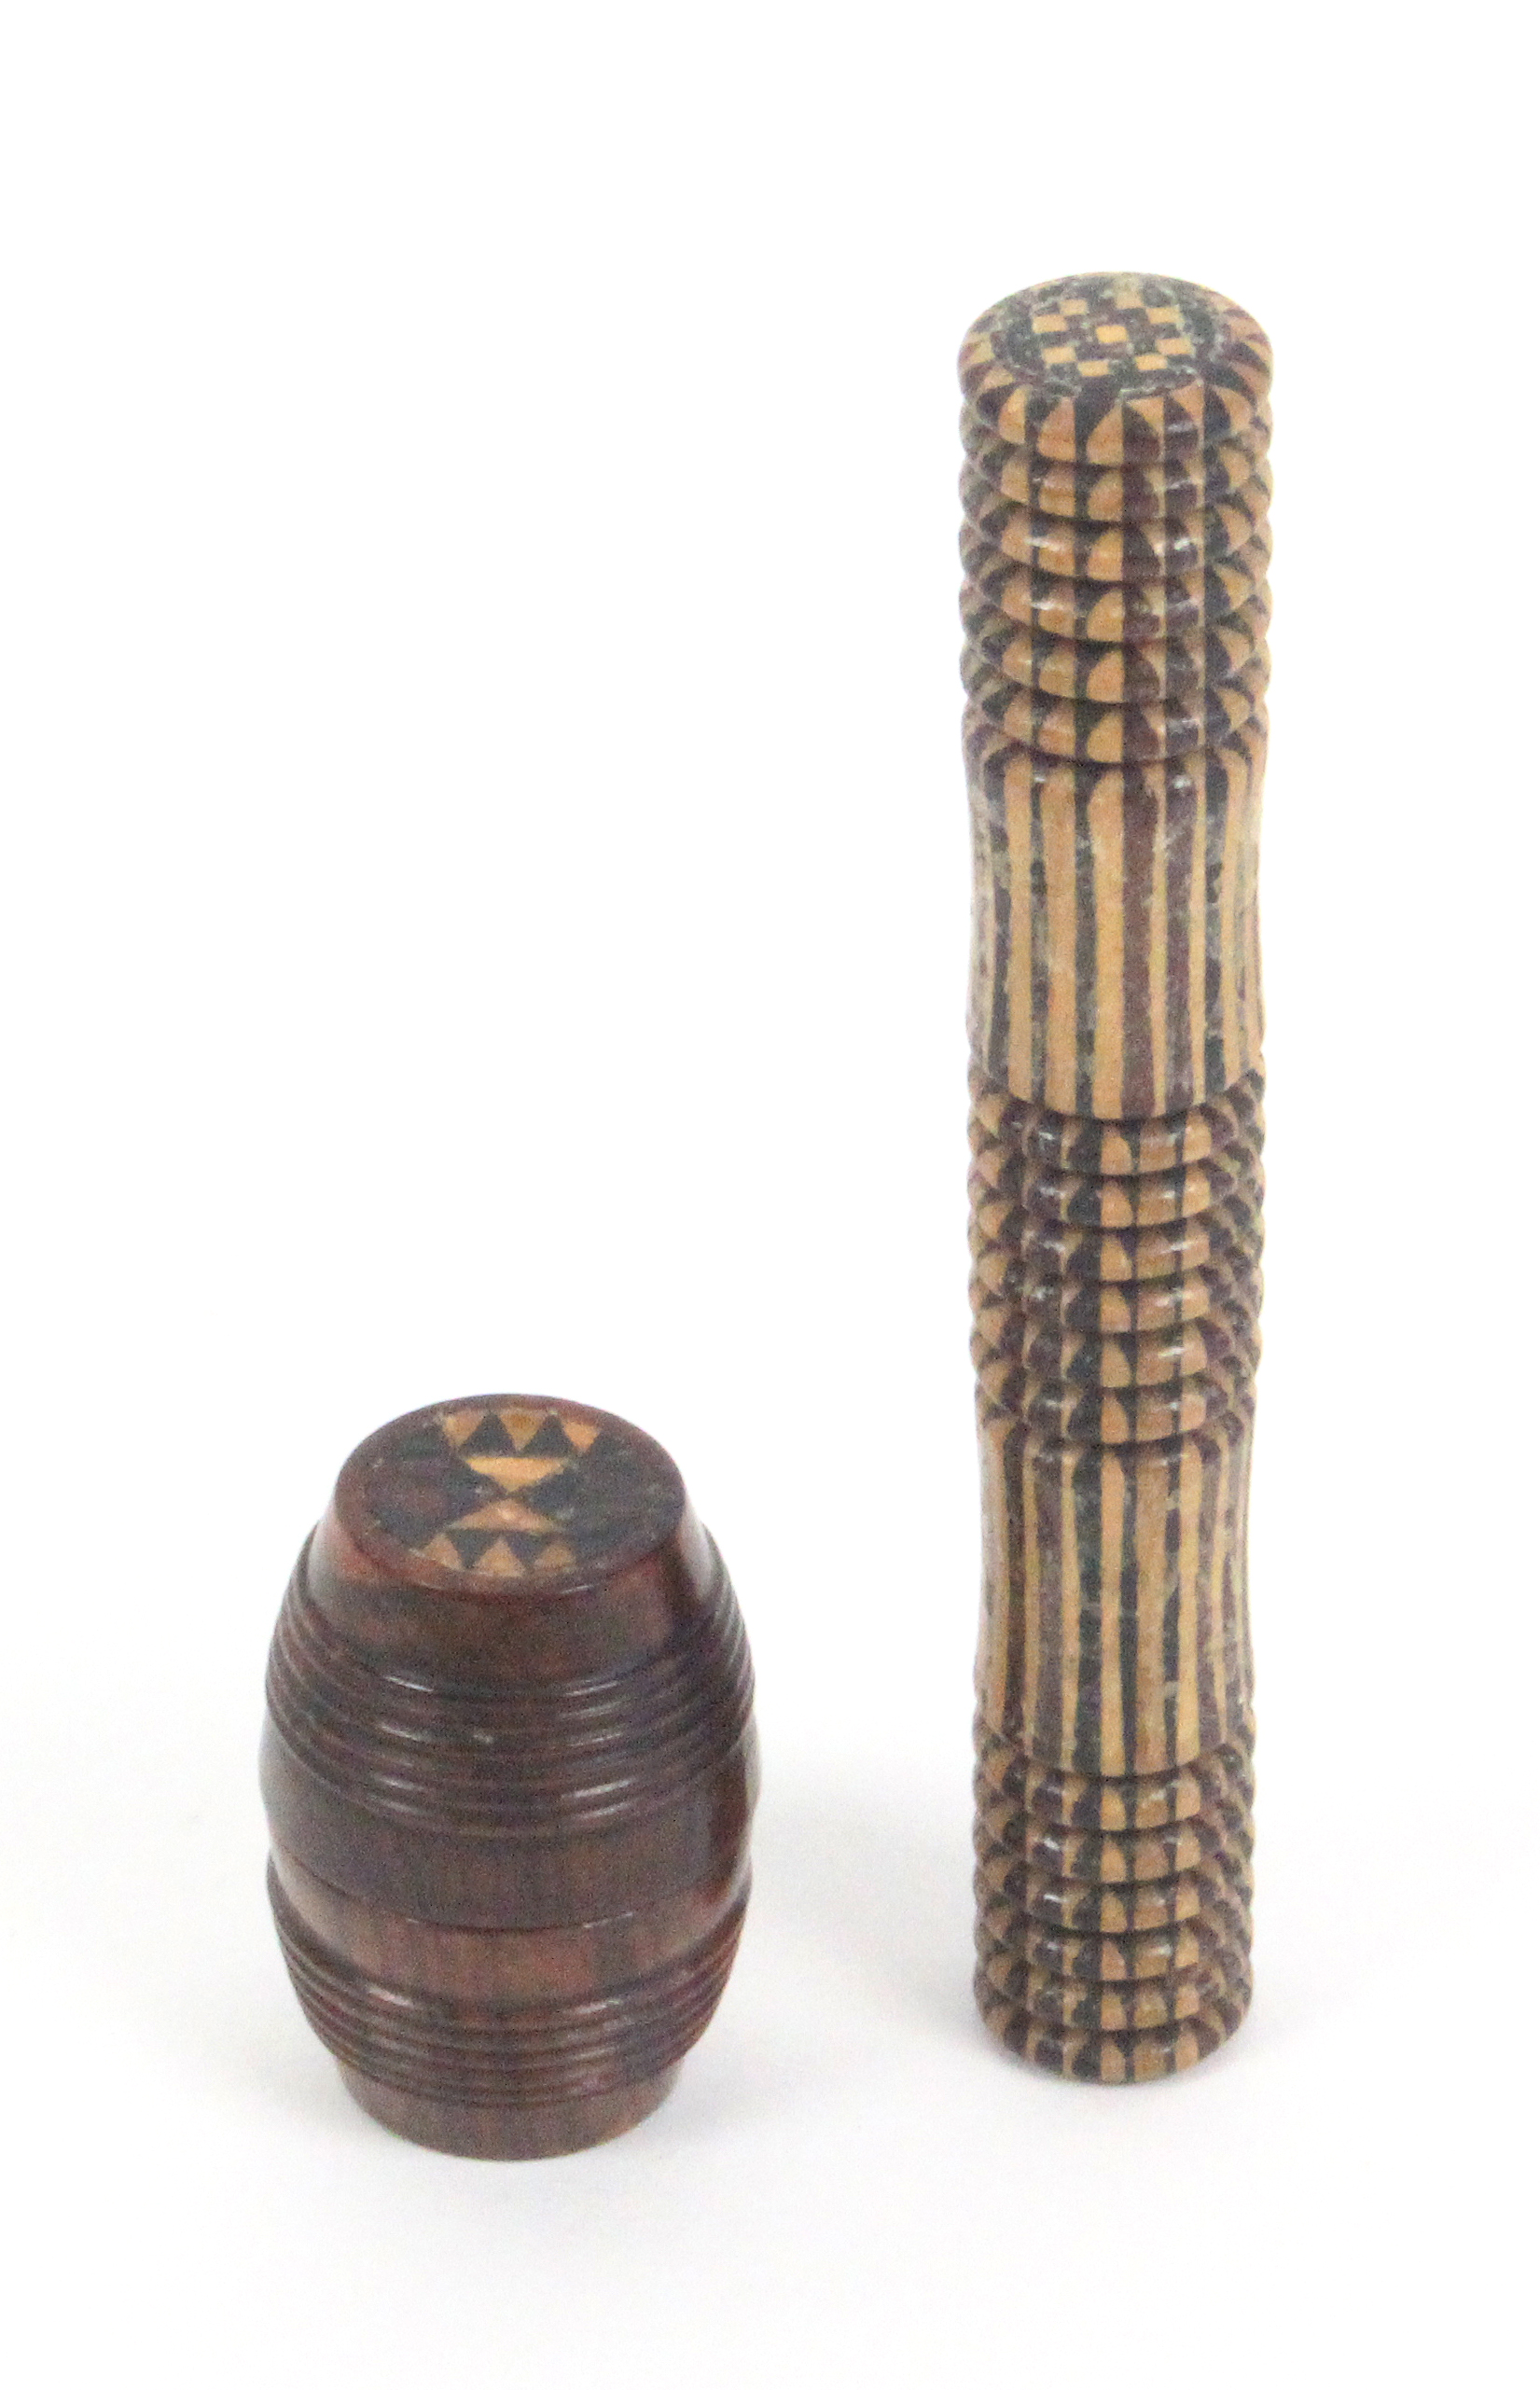 Lot 5 - A Tunbridge ware needle case and a waxer, the cylinder needle case in stickware with geometric end